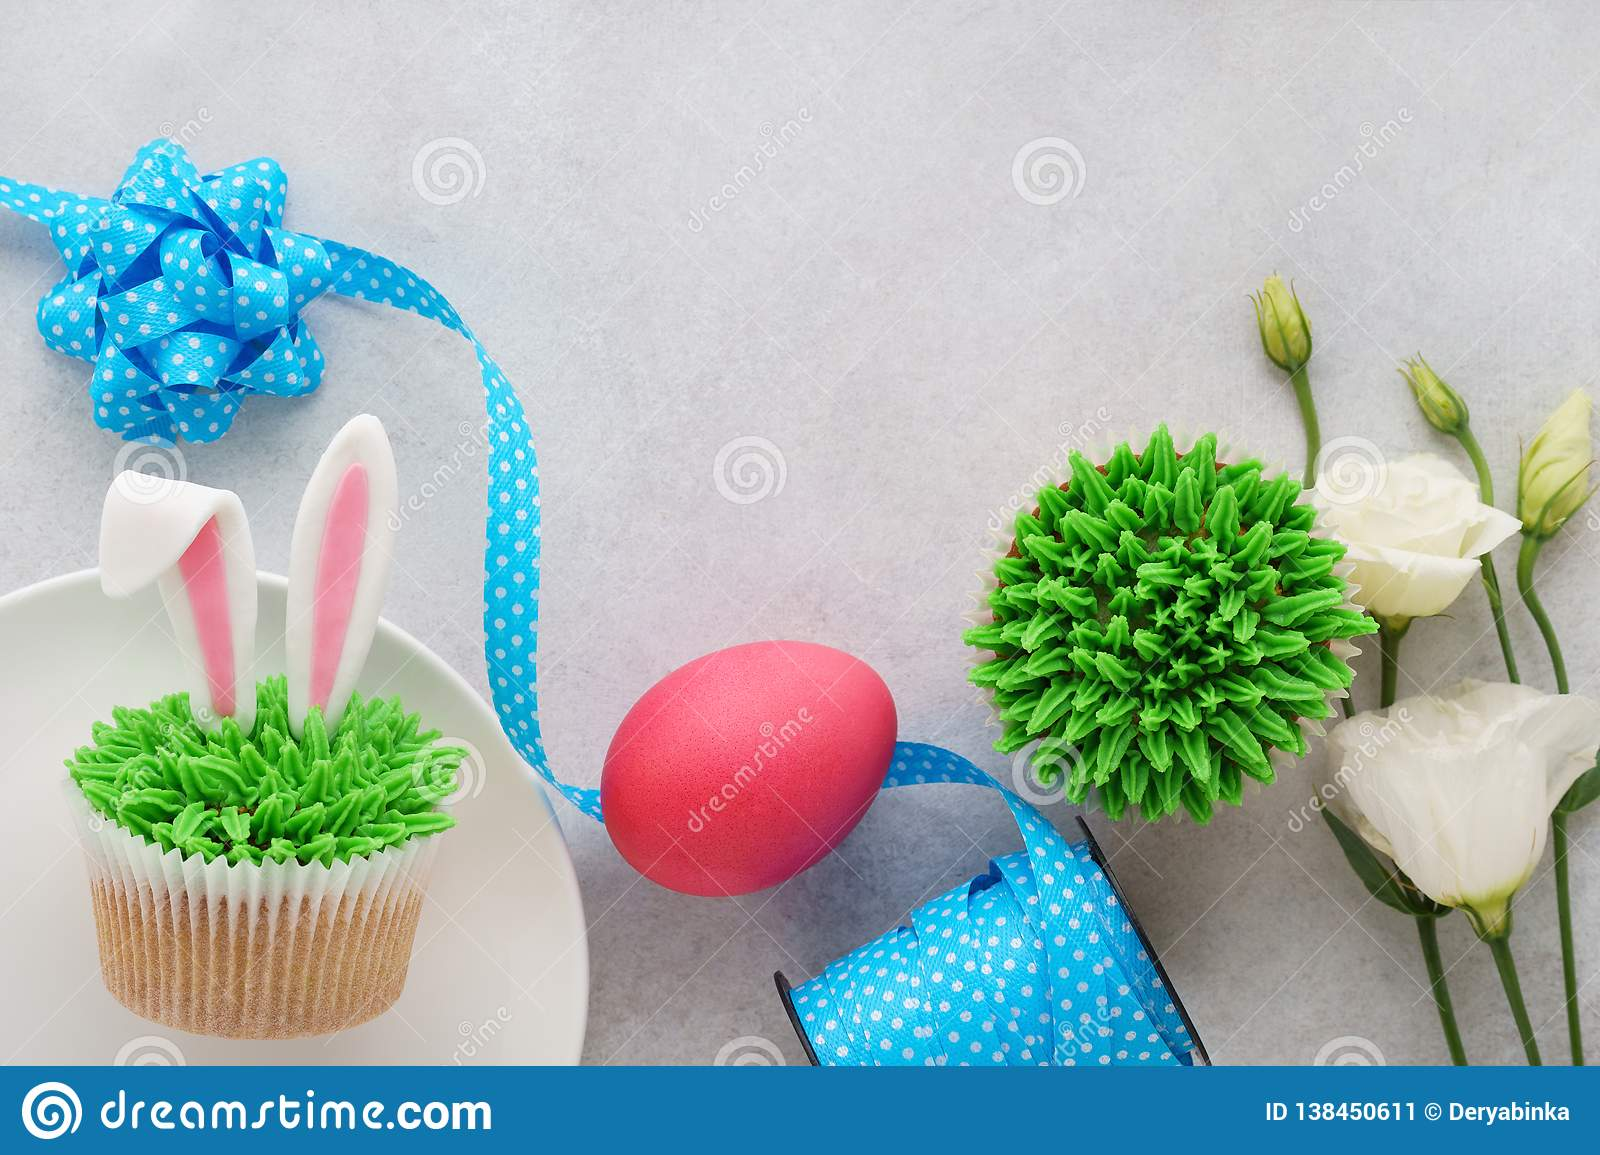 Easter concept with bunny ears cupcakes, blue ribbon, pink egg